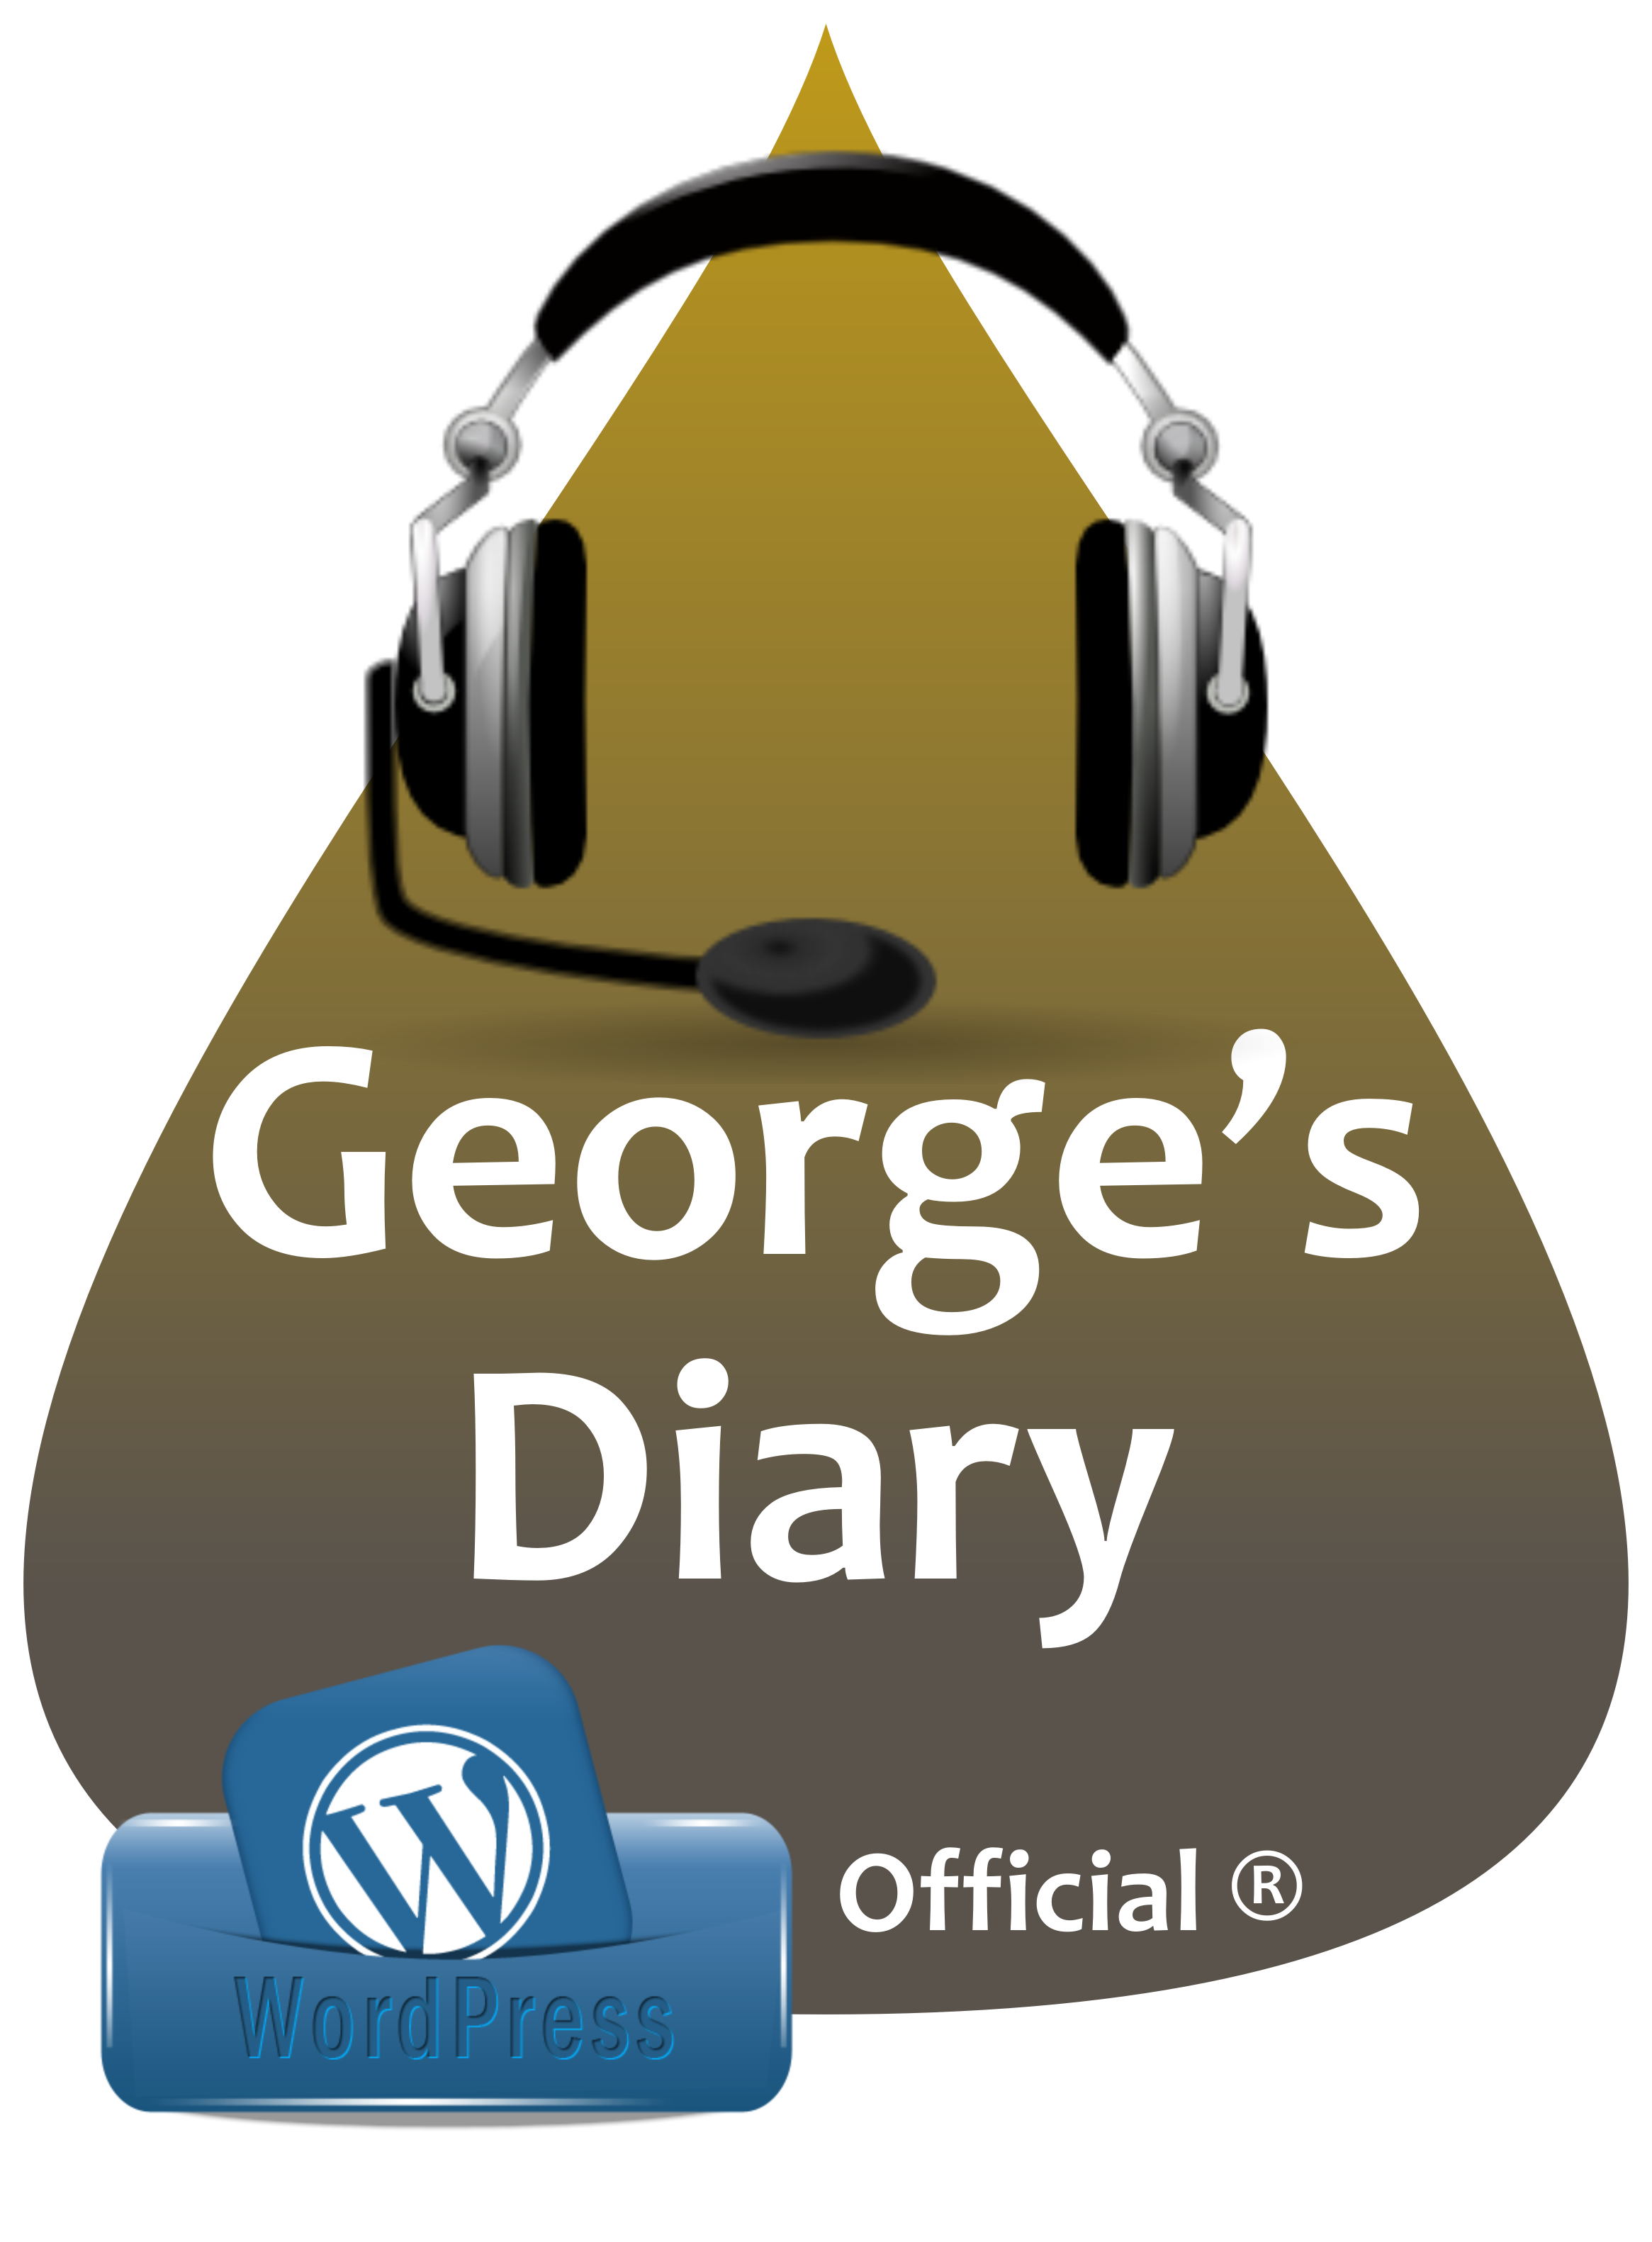 George's Dairy Logo